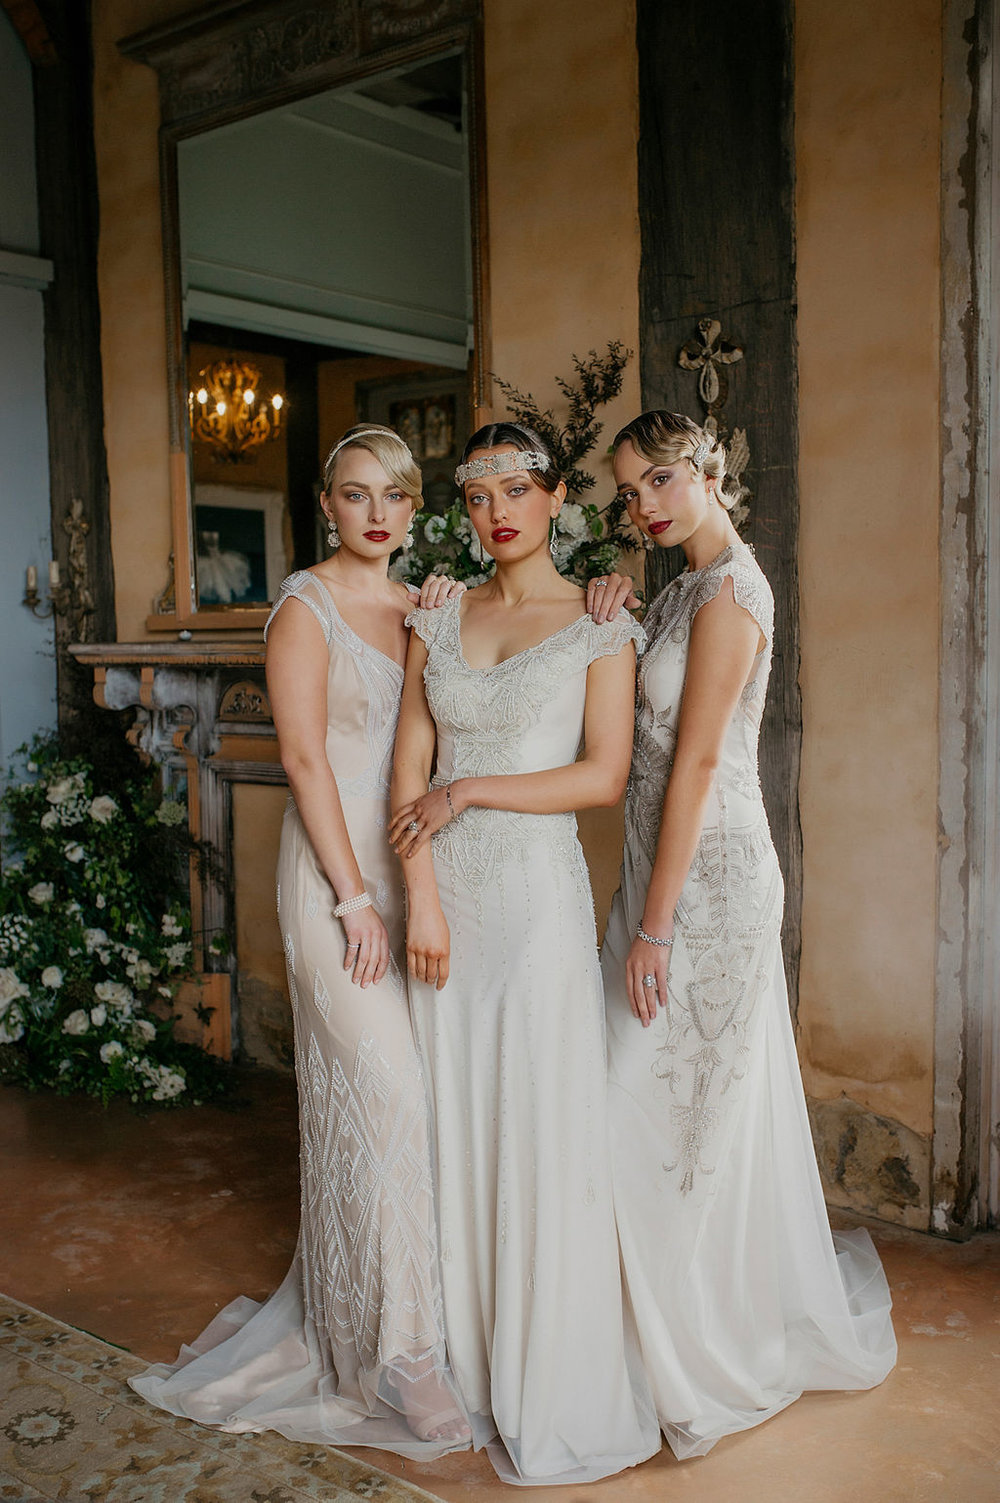 Tara Elke and Polly Gwendolynne Wedding Dress  JessicaAbbyartdecoWEB-8748.jpg